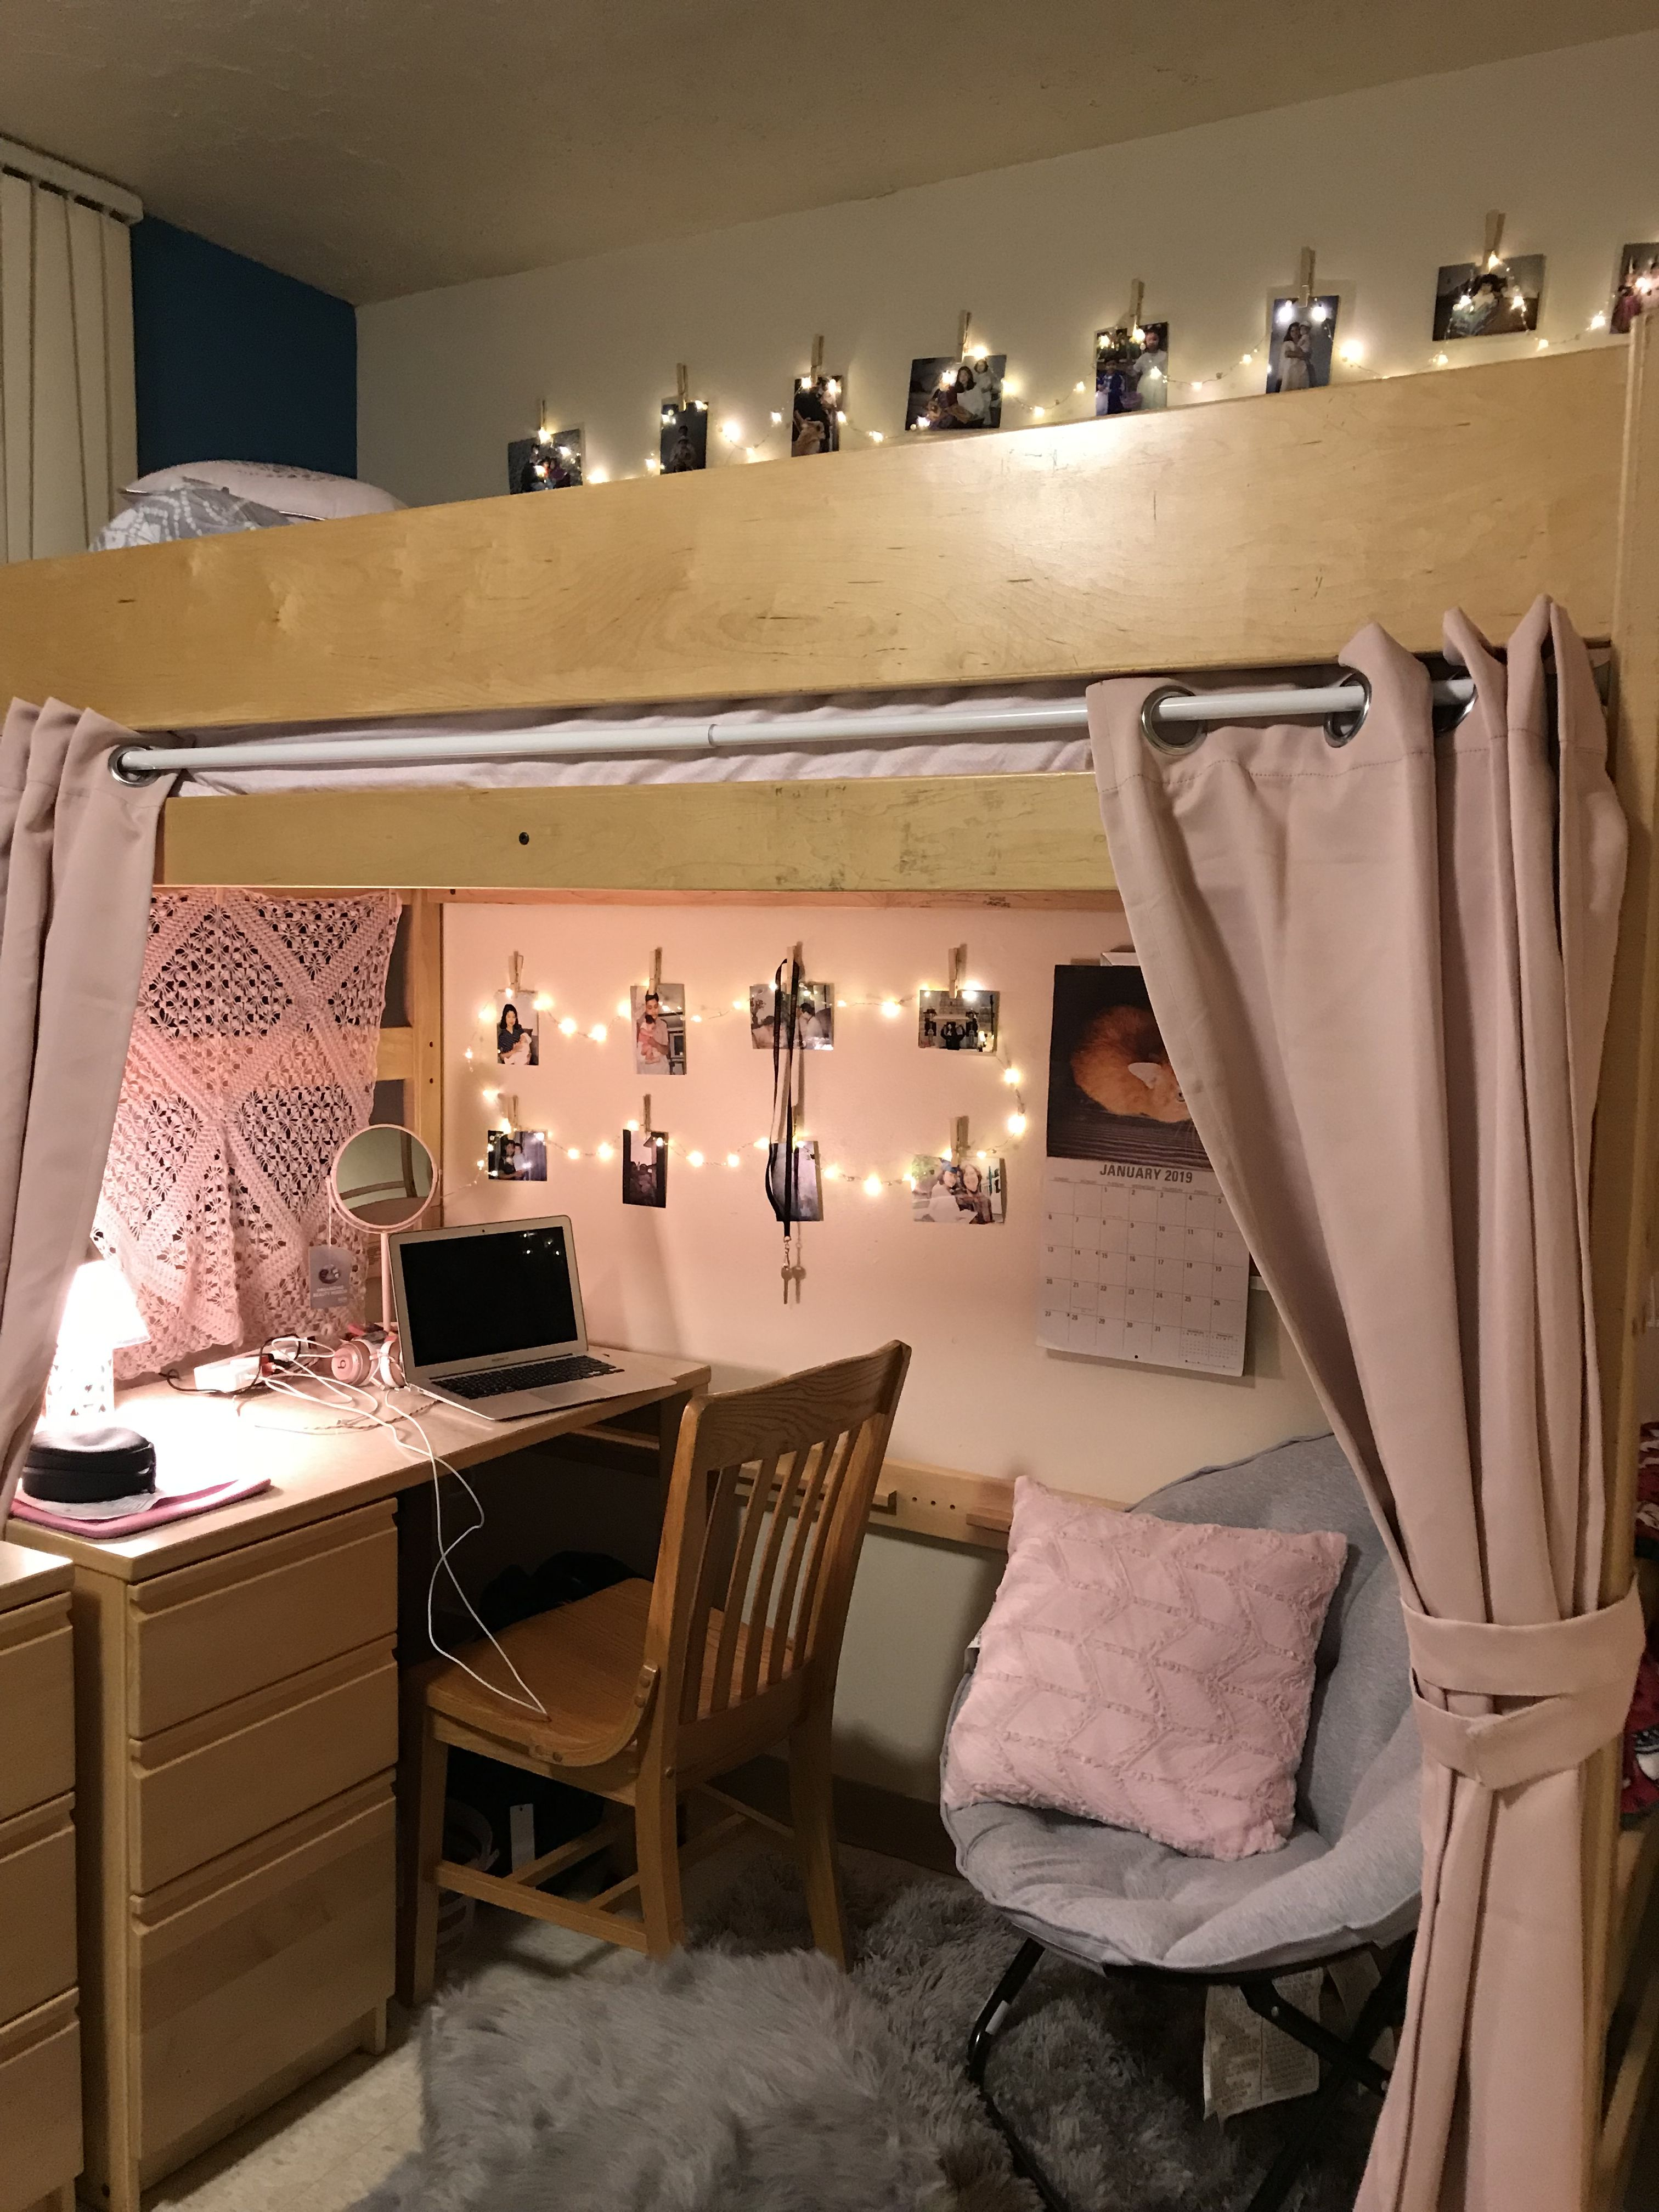 My dorm loft with curtains also teen bedroom ideas  girl  room for every style from  rh pinterest